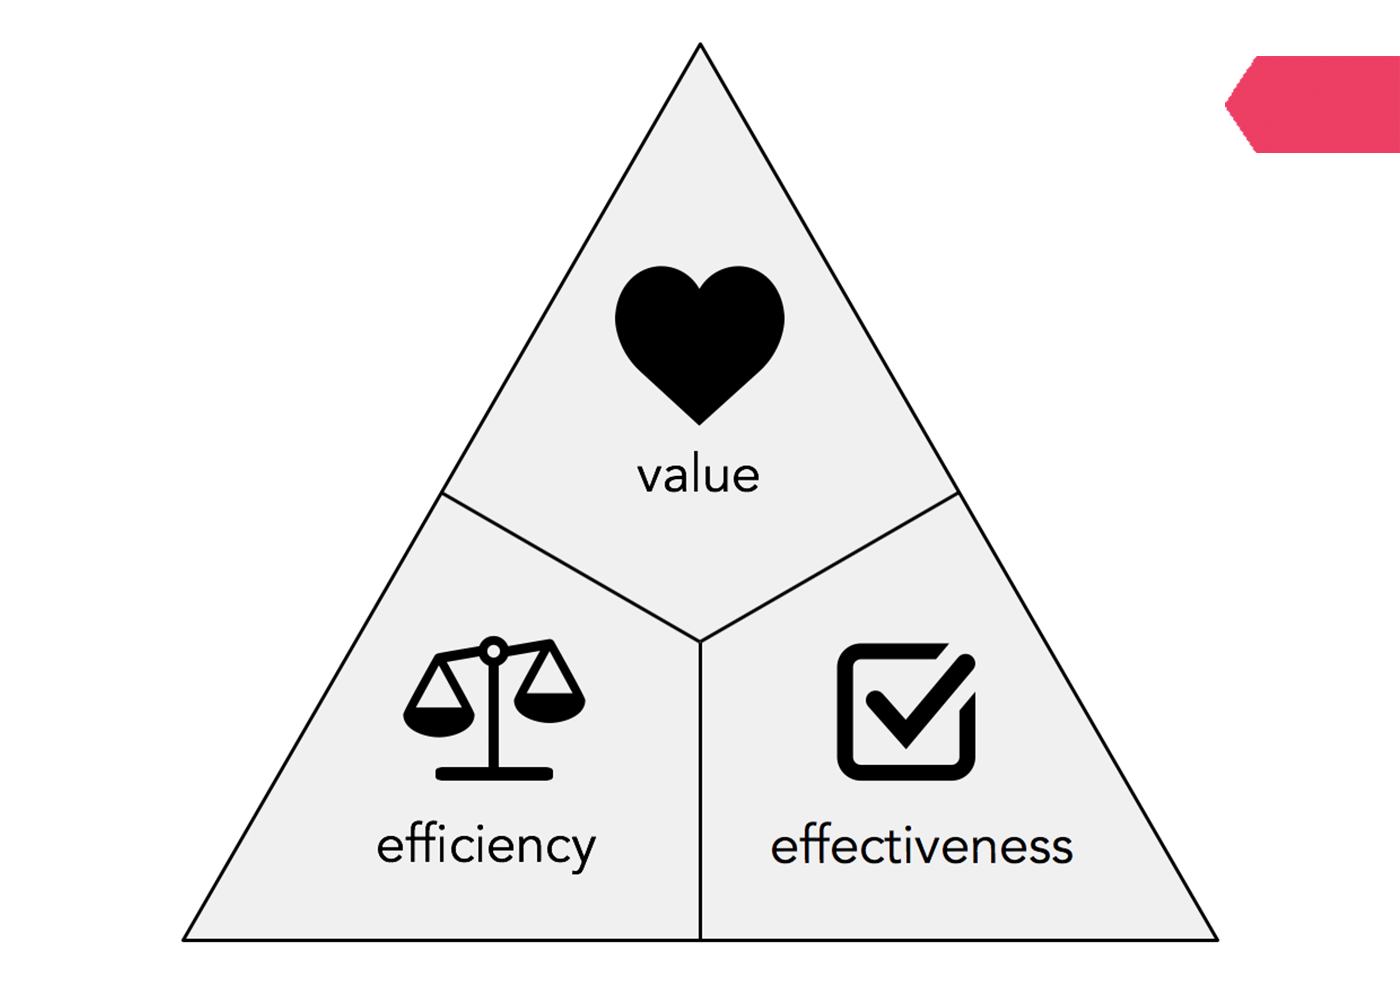 Goal Atlas - Basic Value Model of Strategy